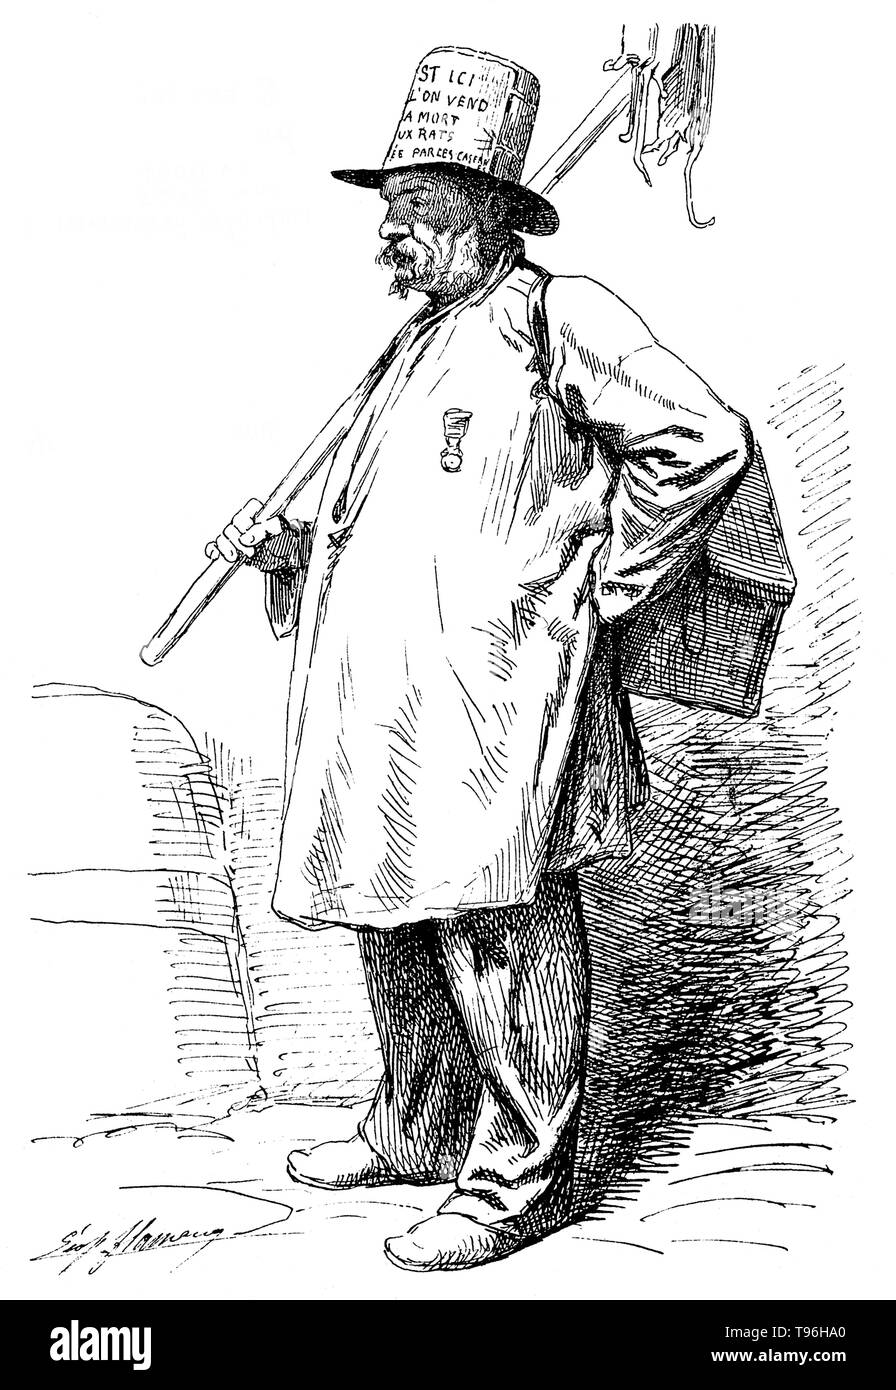 A rat-catcher carrying a pole with dead rats suspended from it, a box strapped over his left shoulder and wearing a hat advertising his occupation. A rat-catcher is a person who practices rat-catching as a professional form of pest control. Keeping the rat population under control was practiced in Europe to prevent the spread of diseases, most notoriously the Black Plague, and to prevent damage to food supplies. In modern developed countries, such a professional is otherwise known as a pest control operative or pest technician. Rat-catchers may attempt to capture rats themselves, or release ra - Stock Image